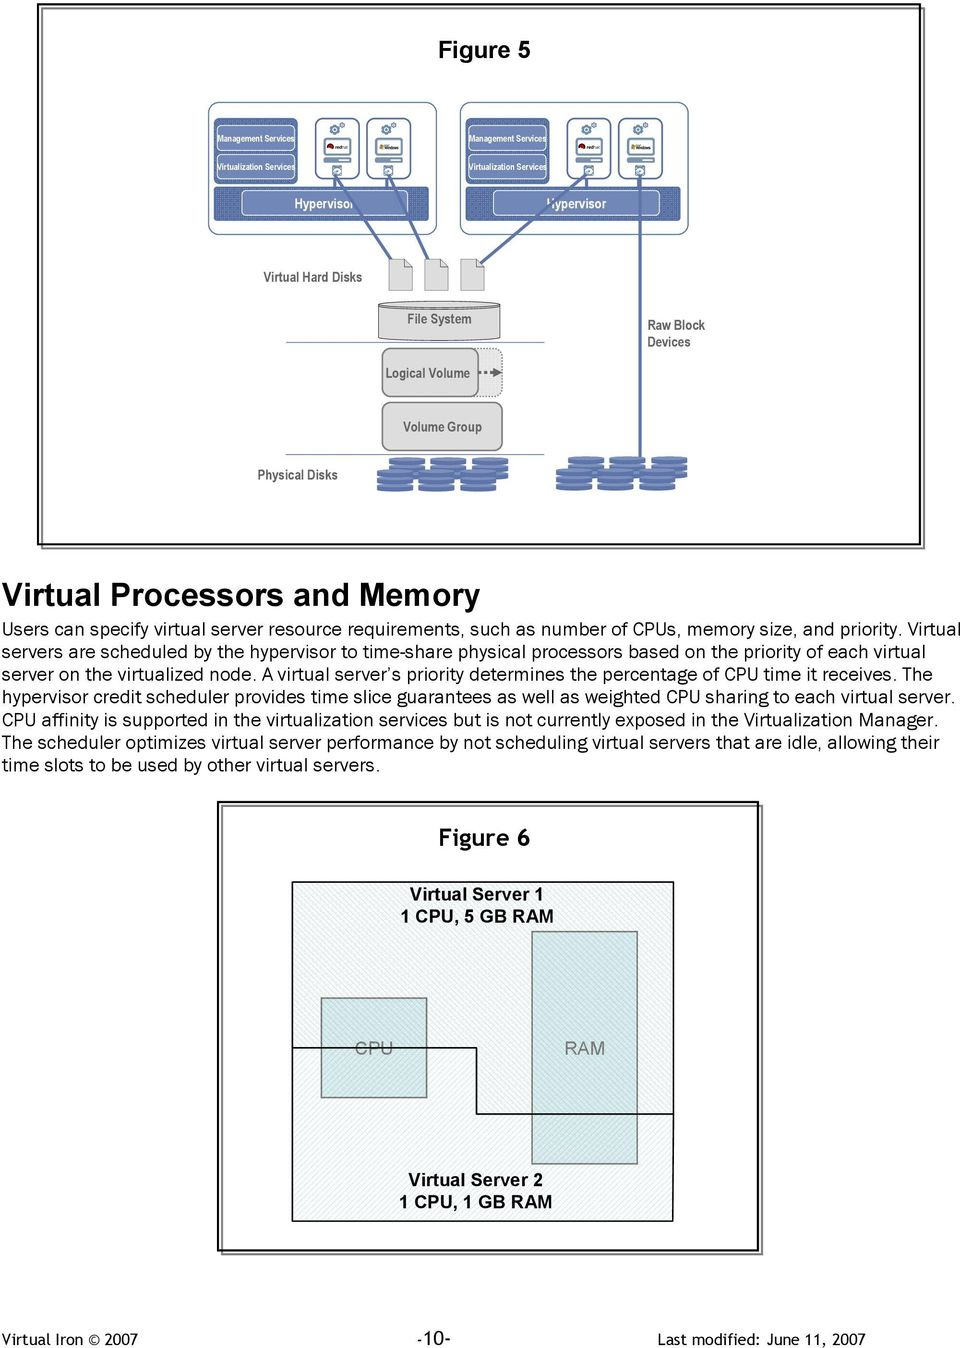 Virtual servers are scheduled by the hypervisor to time-share physical processors based on the priority of each virtual server on the virtualized node.